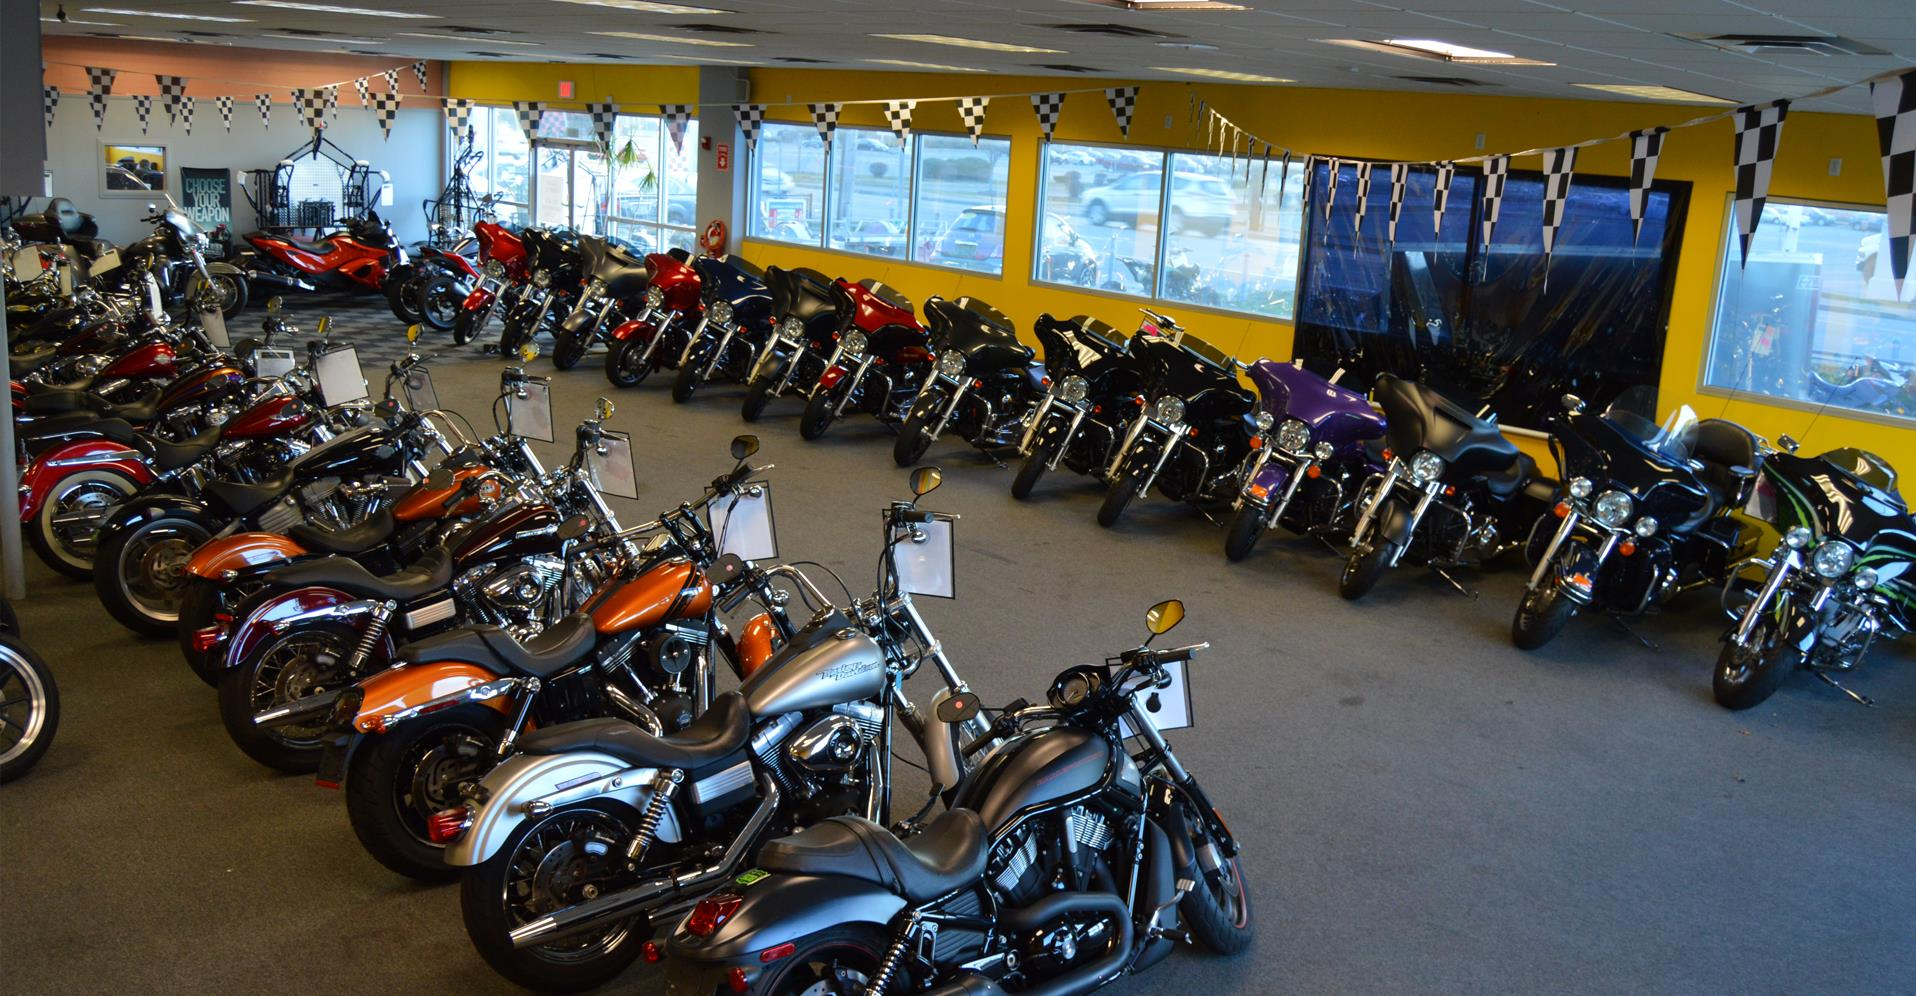 Motorcycle Shops Near Me Open On Sundays Ash Cycles